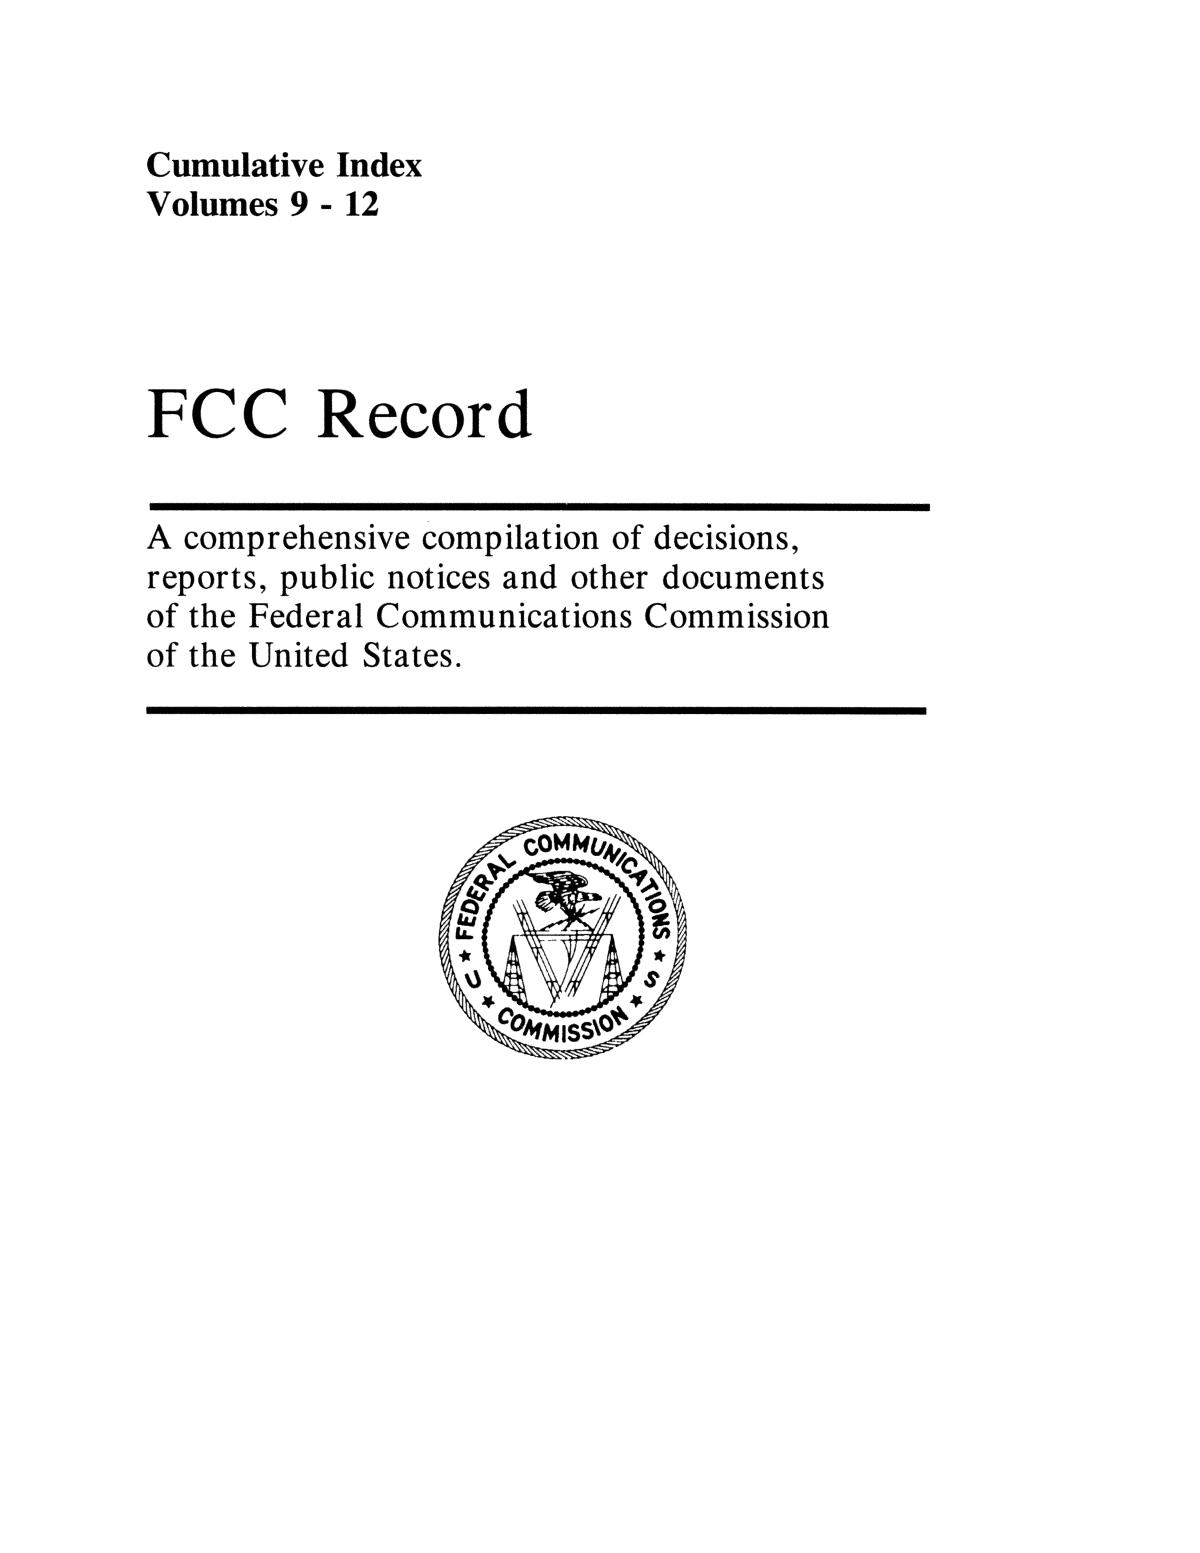 FCC Record, Cumulative Index, Volumes 9-12                                                                                                      Front Cover